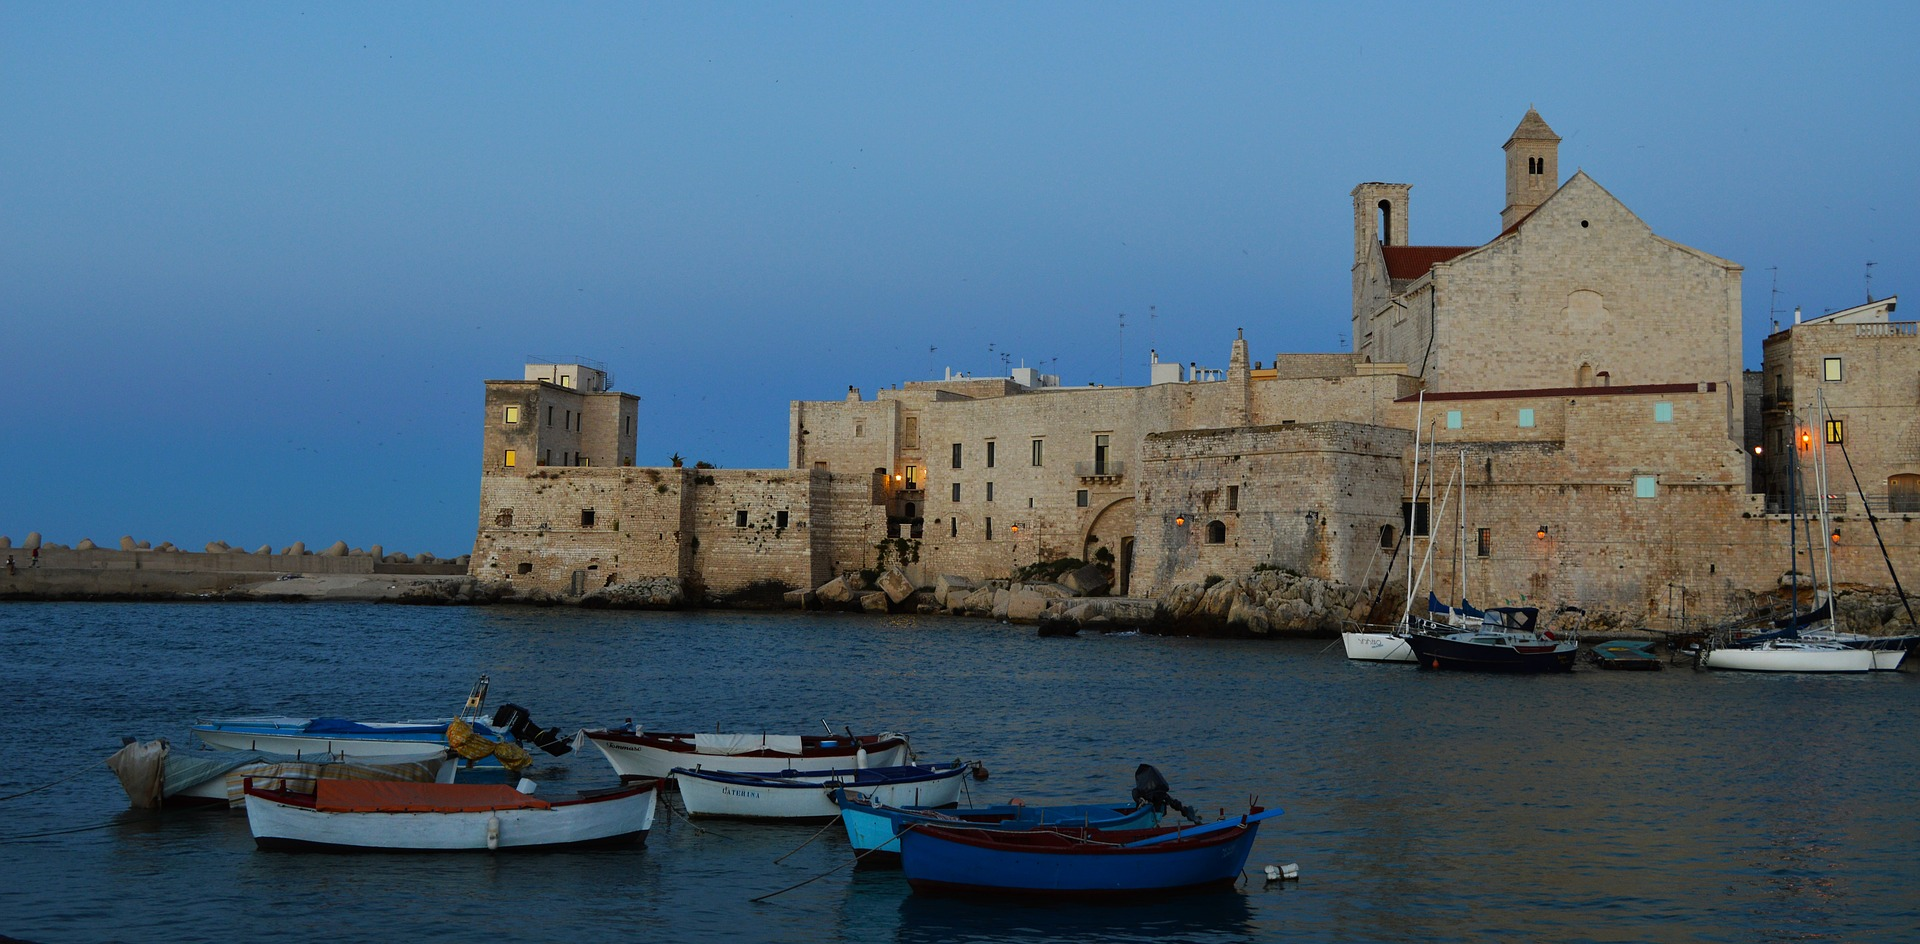 The city of Bari during the evening